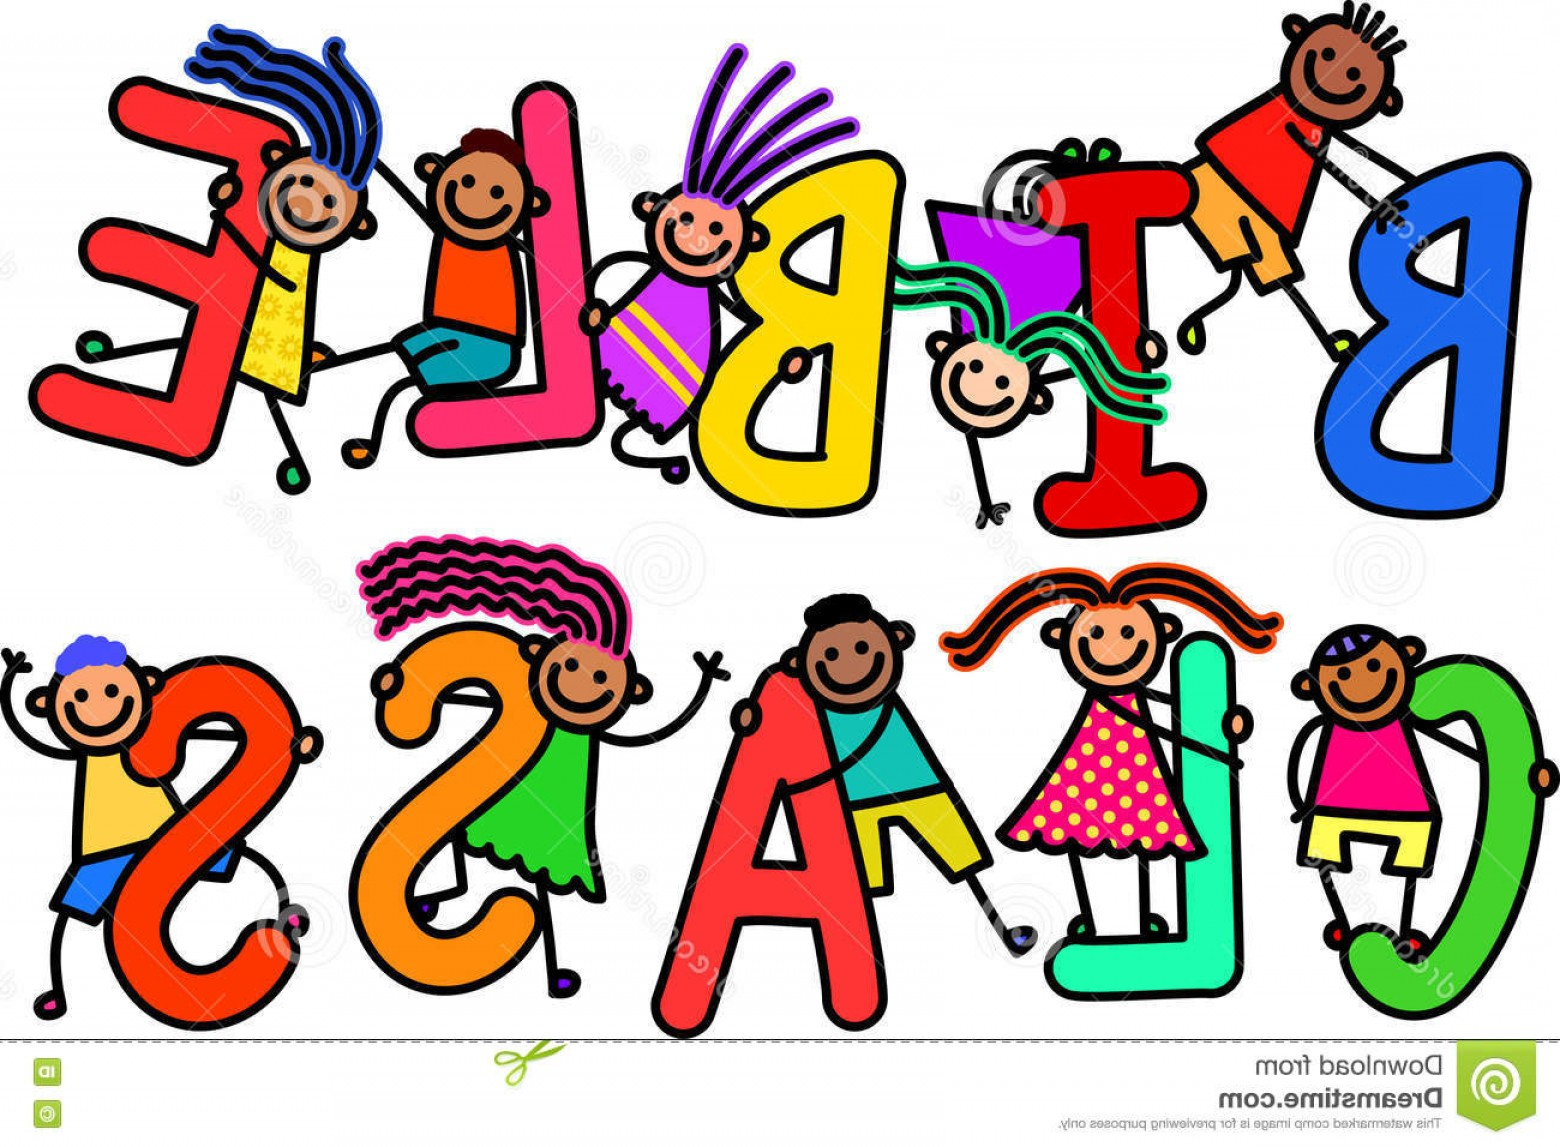 Bible Class Background Vector: Stock Illustration Bible Class Kids Group Happy Stick Children Climbing Over Letters Alphabet Spell Out Words Image